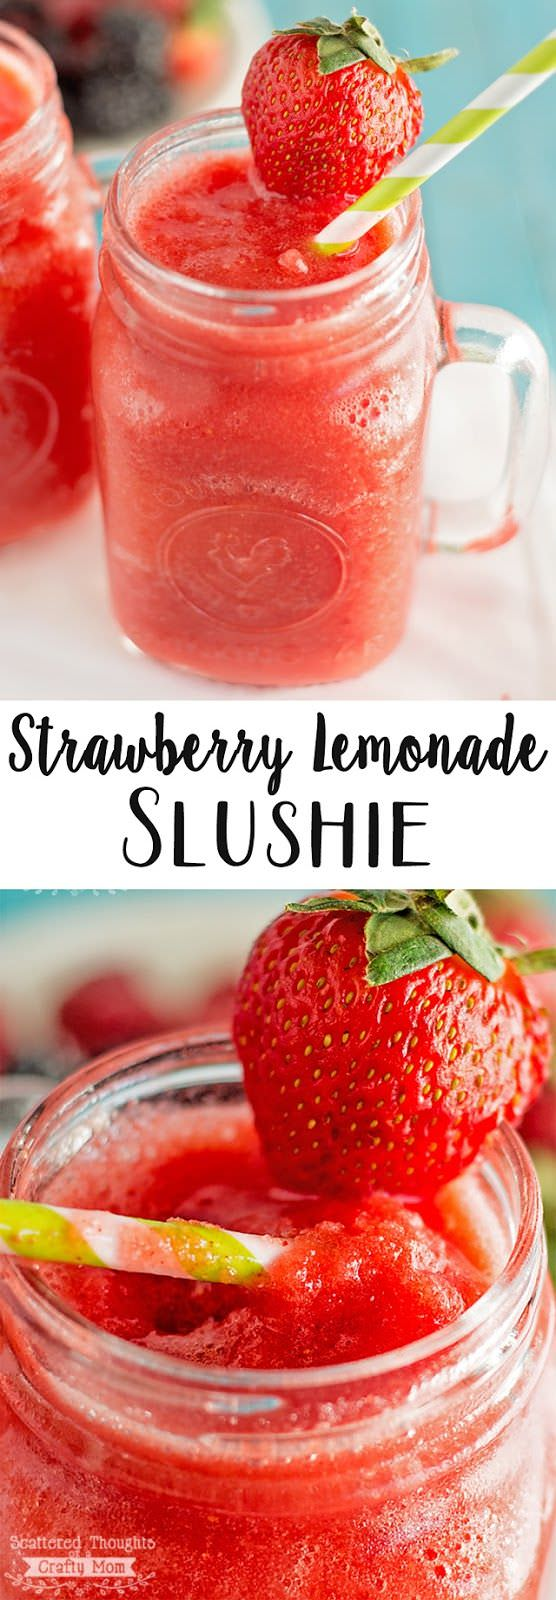 Strawberries, who don't love them. If you have some strawberries in your home and you need to use them up quickly and searching for what to do, make a strawberry lemonade slushie.